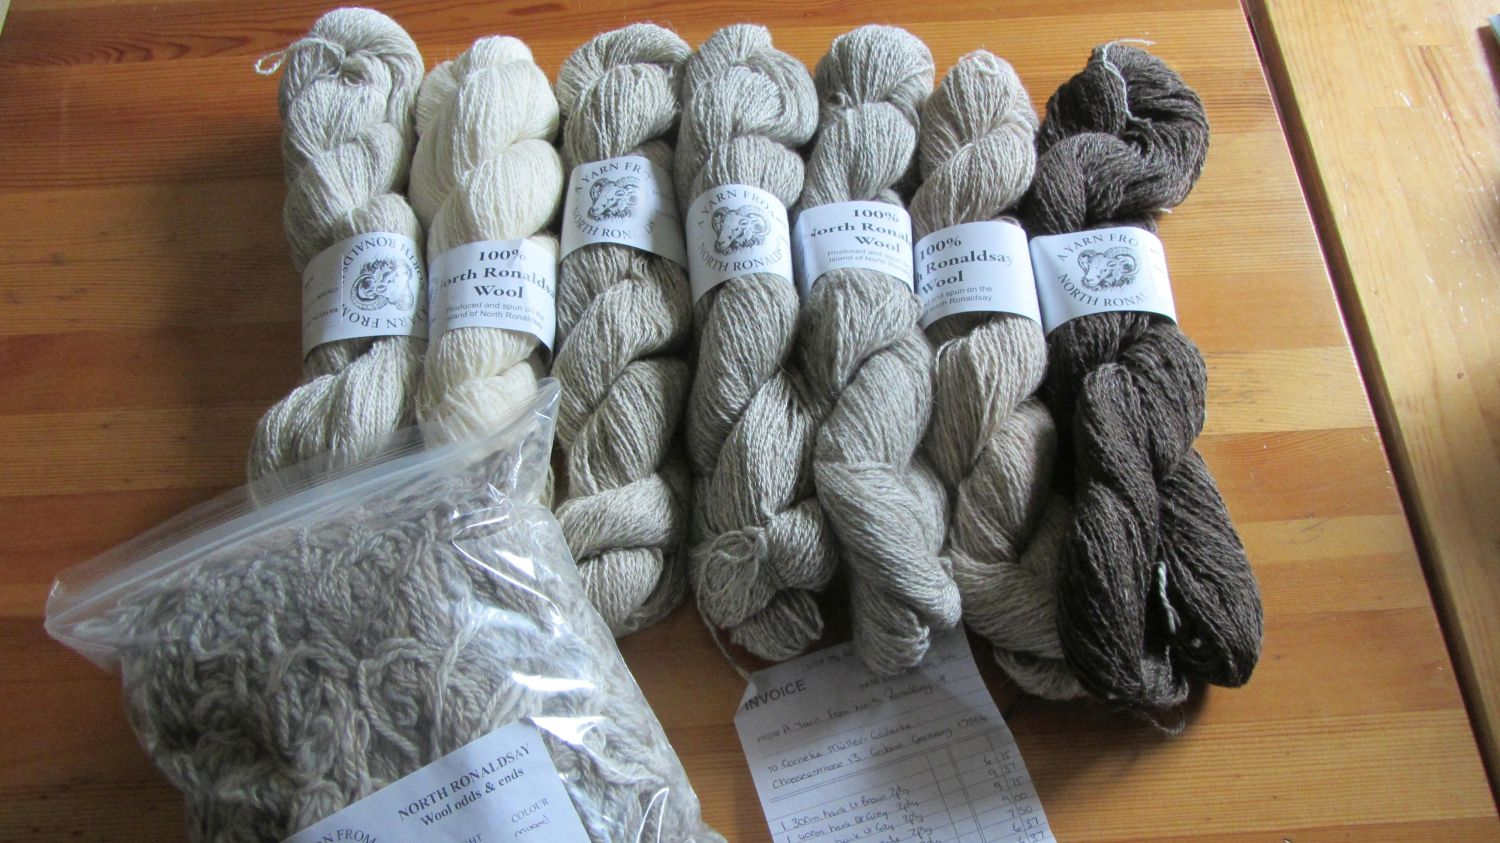 a Yarn from North Ronaldsay